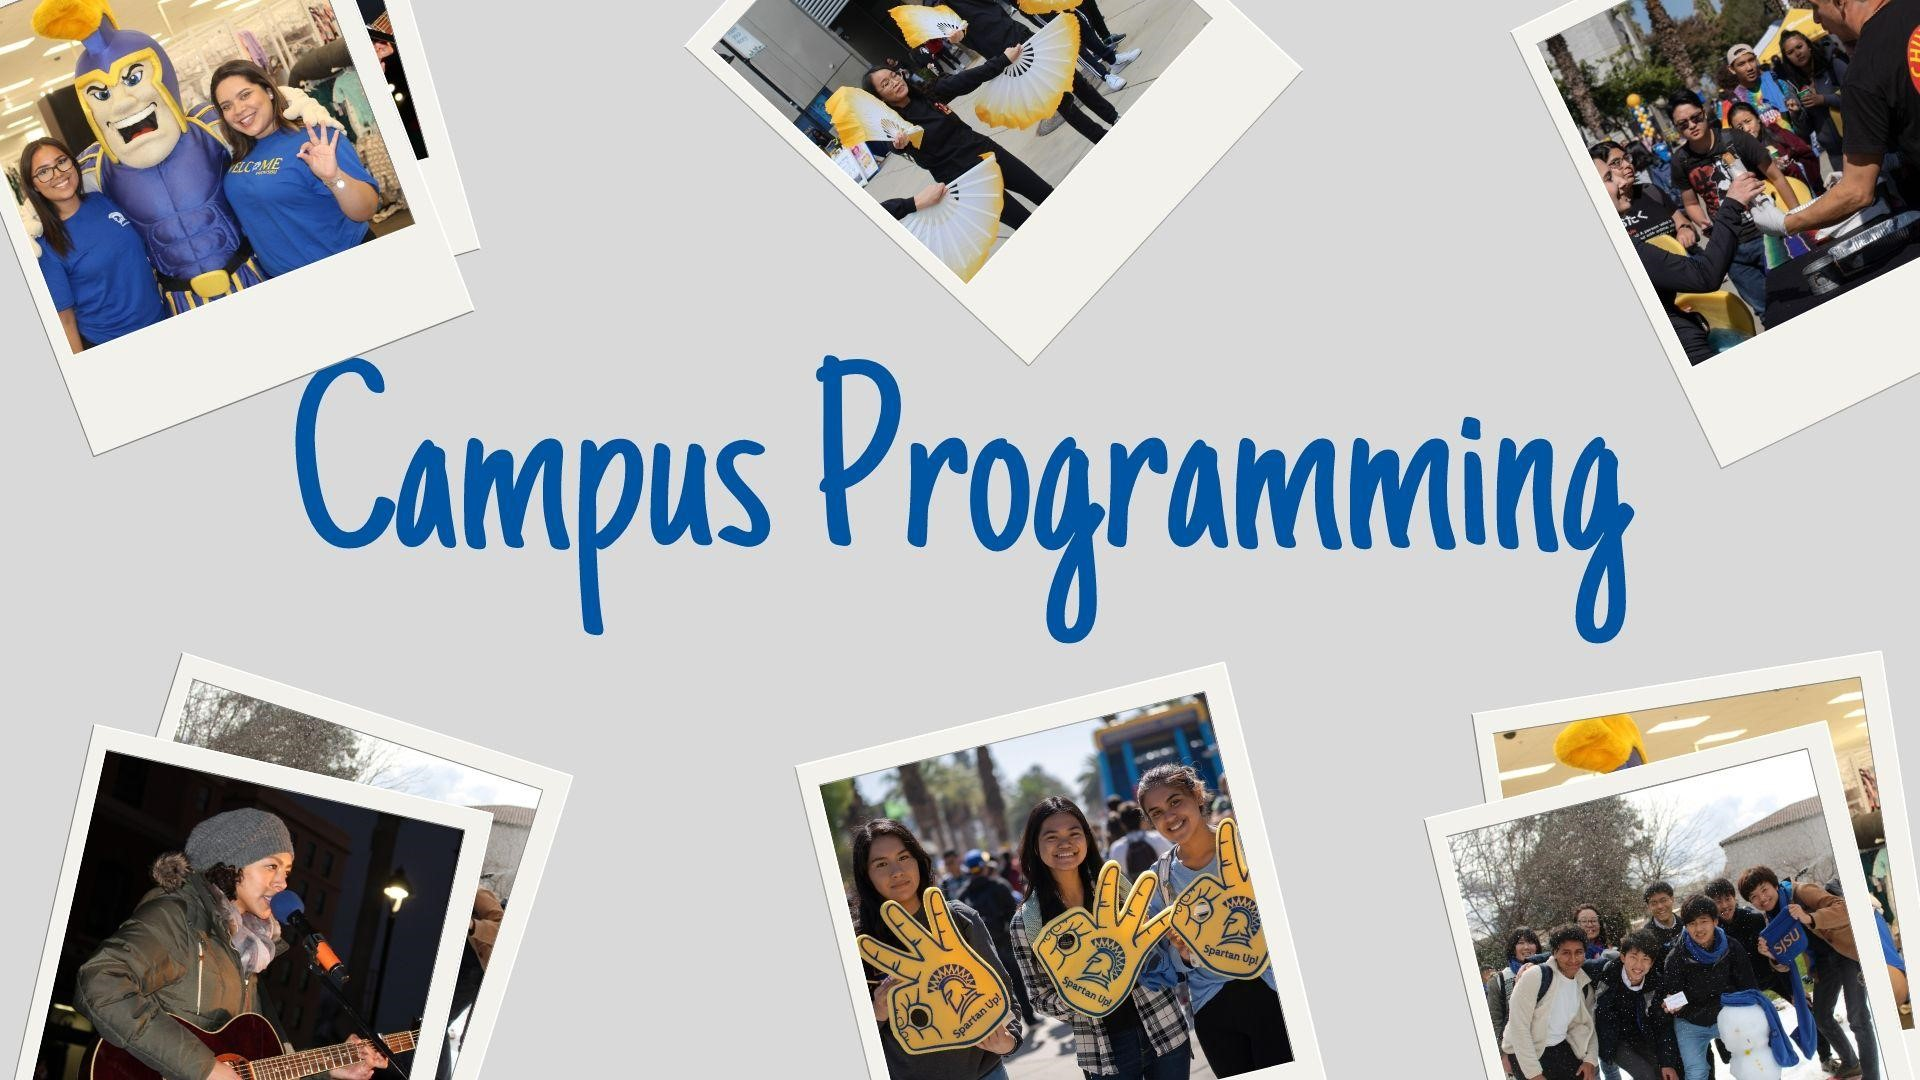 Campus Programming graphic with snapshots of students at various campus events